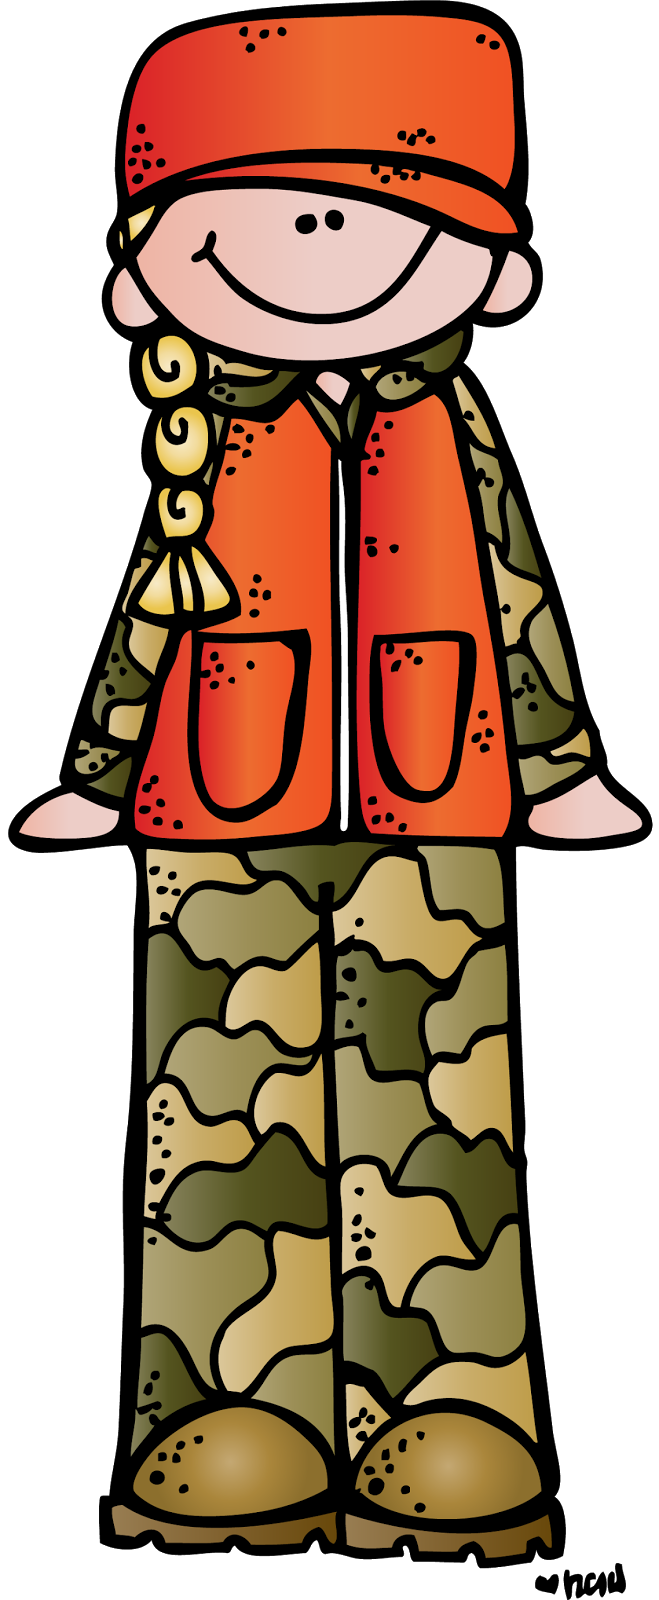 Hunting clipart man hunting. Melonheadz girl hunter freebie